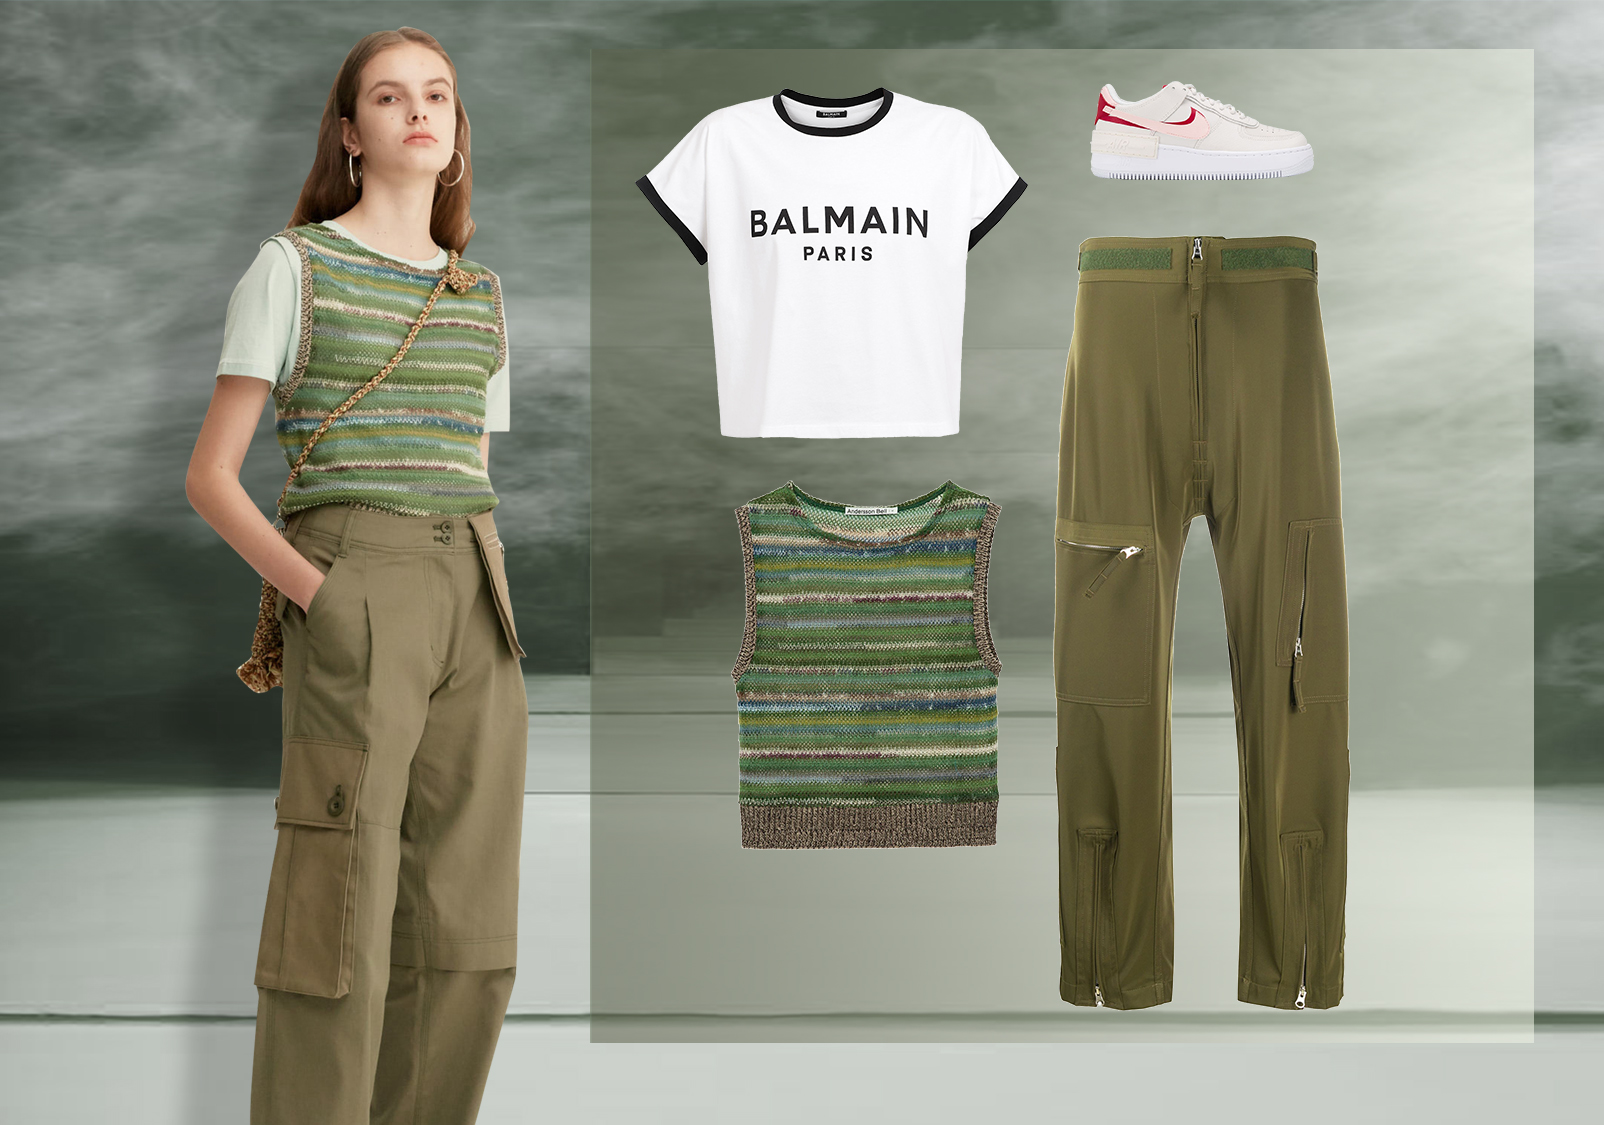 Styling of High-Waist Trousers -- Clothing Collocation for Women's Trousers